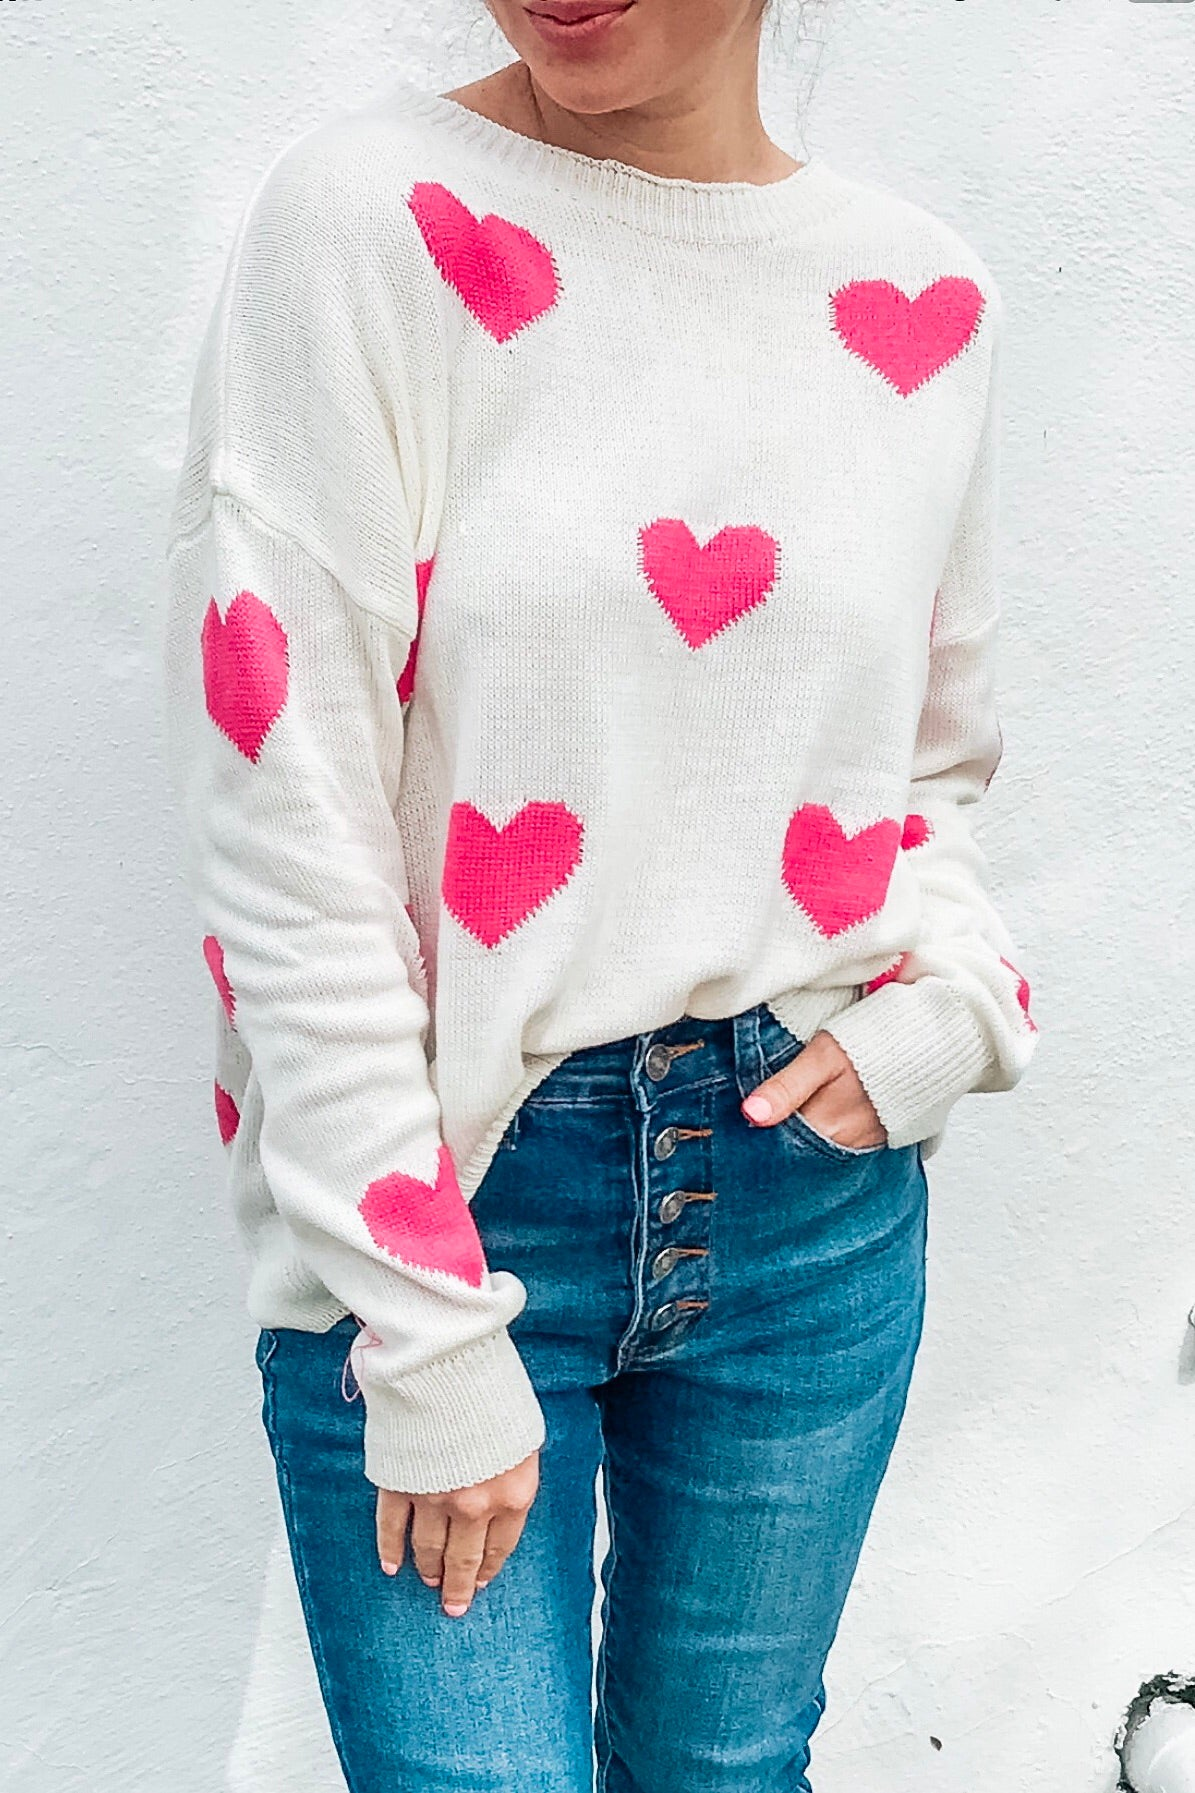 Pink Heart L/S Light Sweater Top - White/Pink